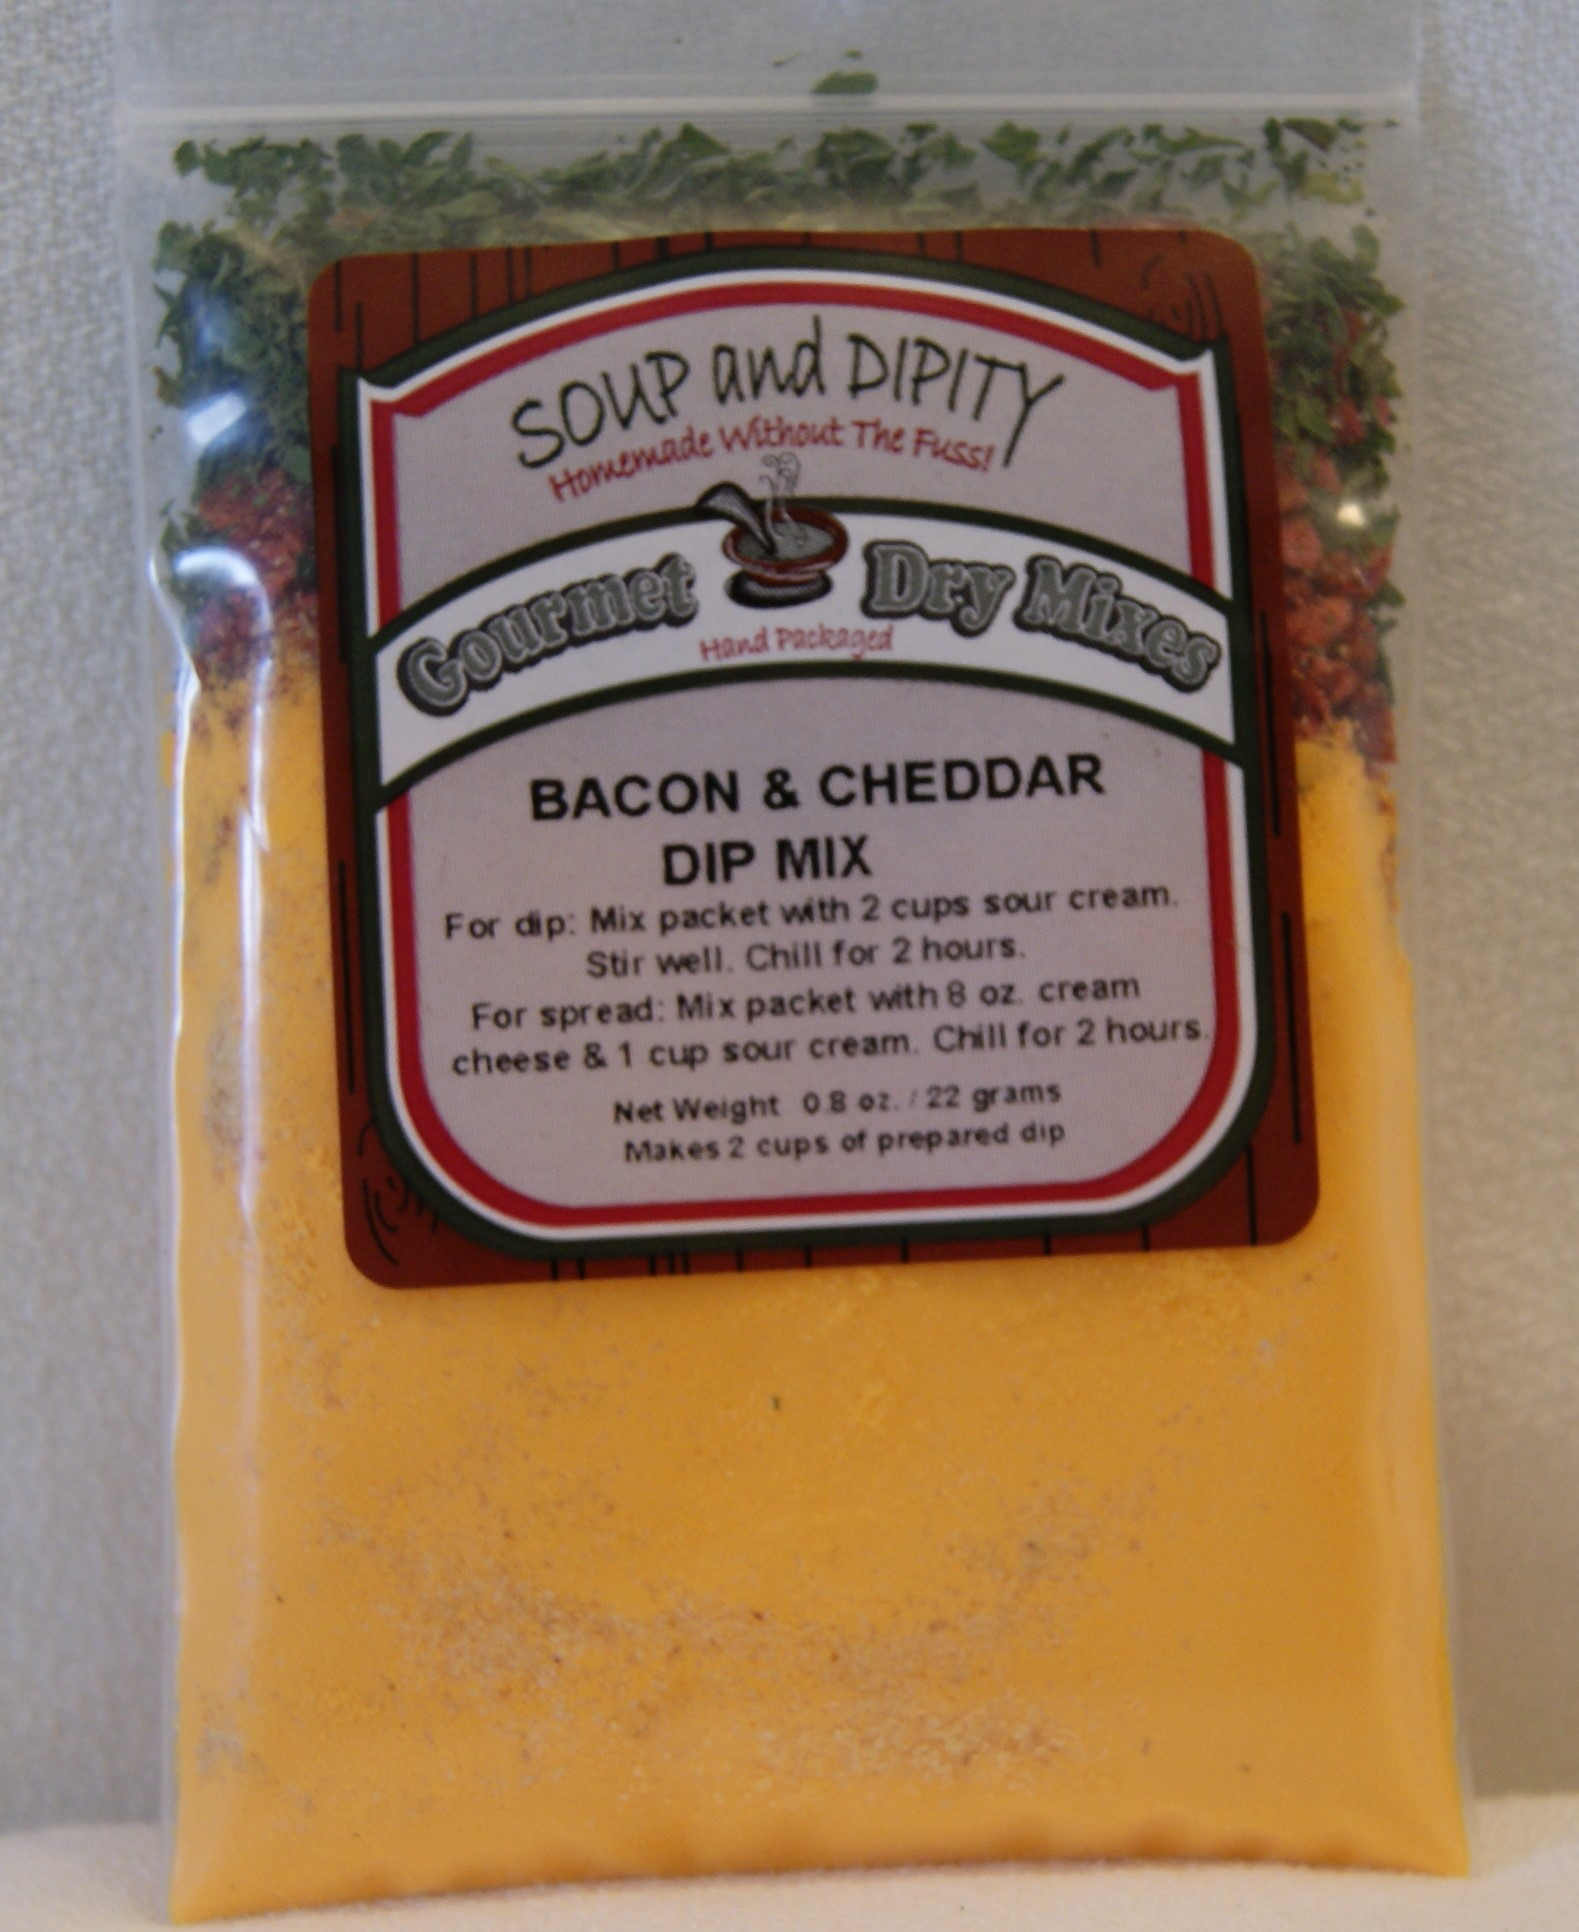 Bacon & Cheddar Dip Mix